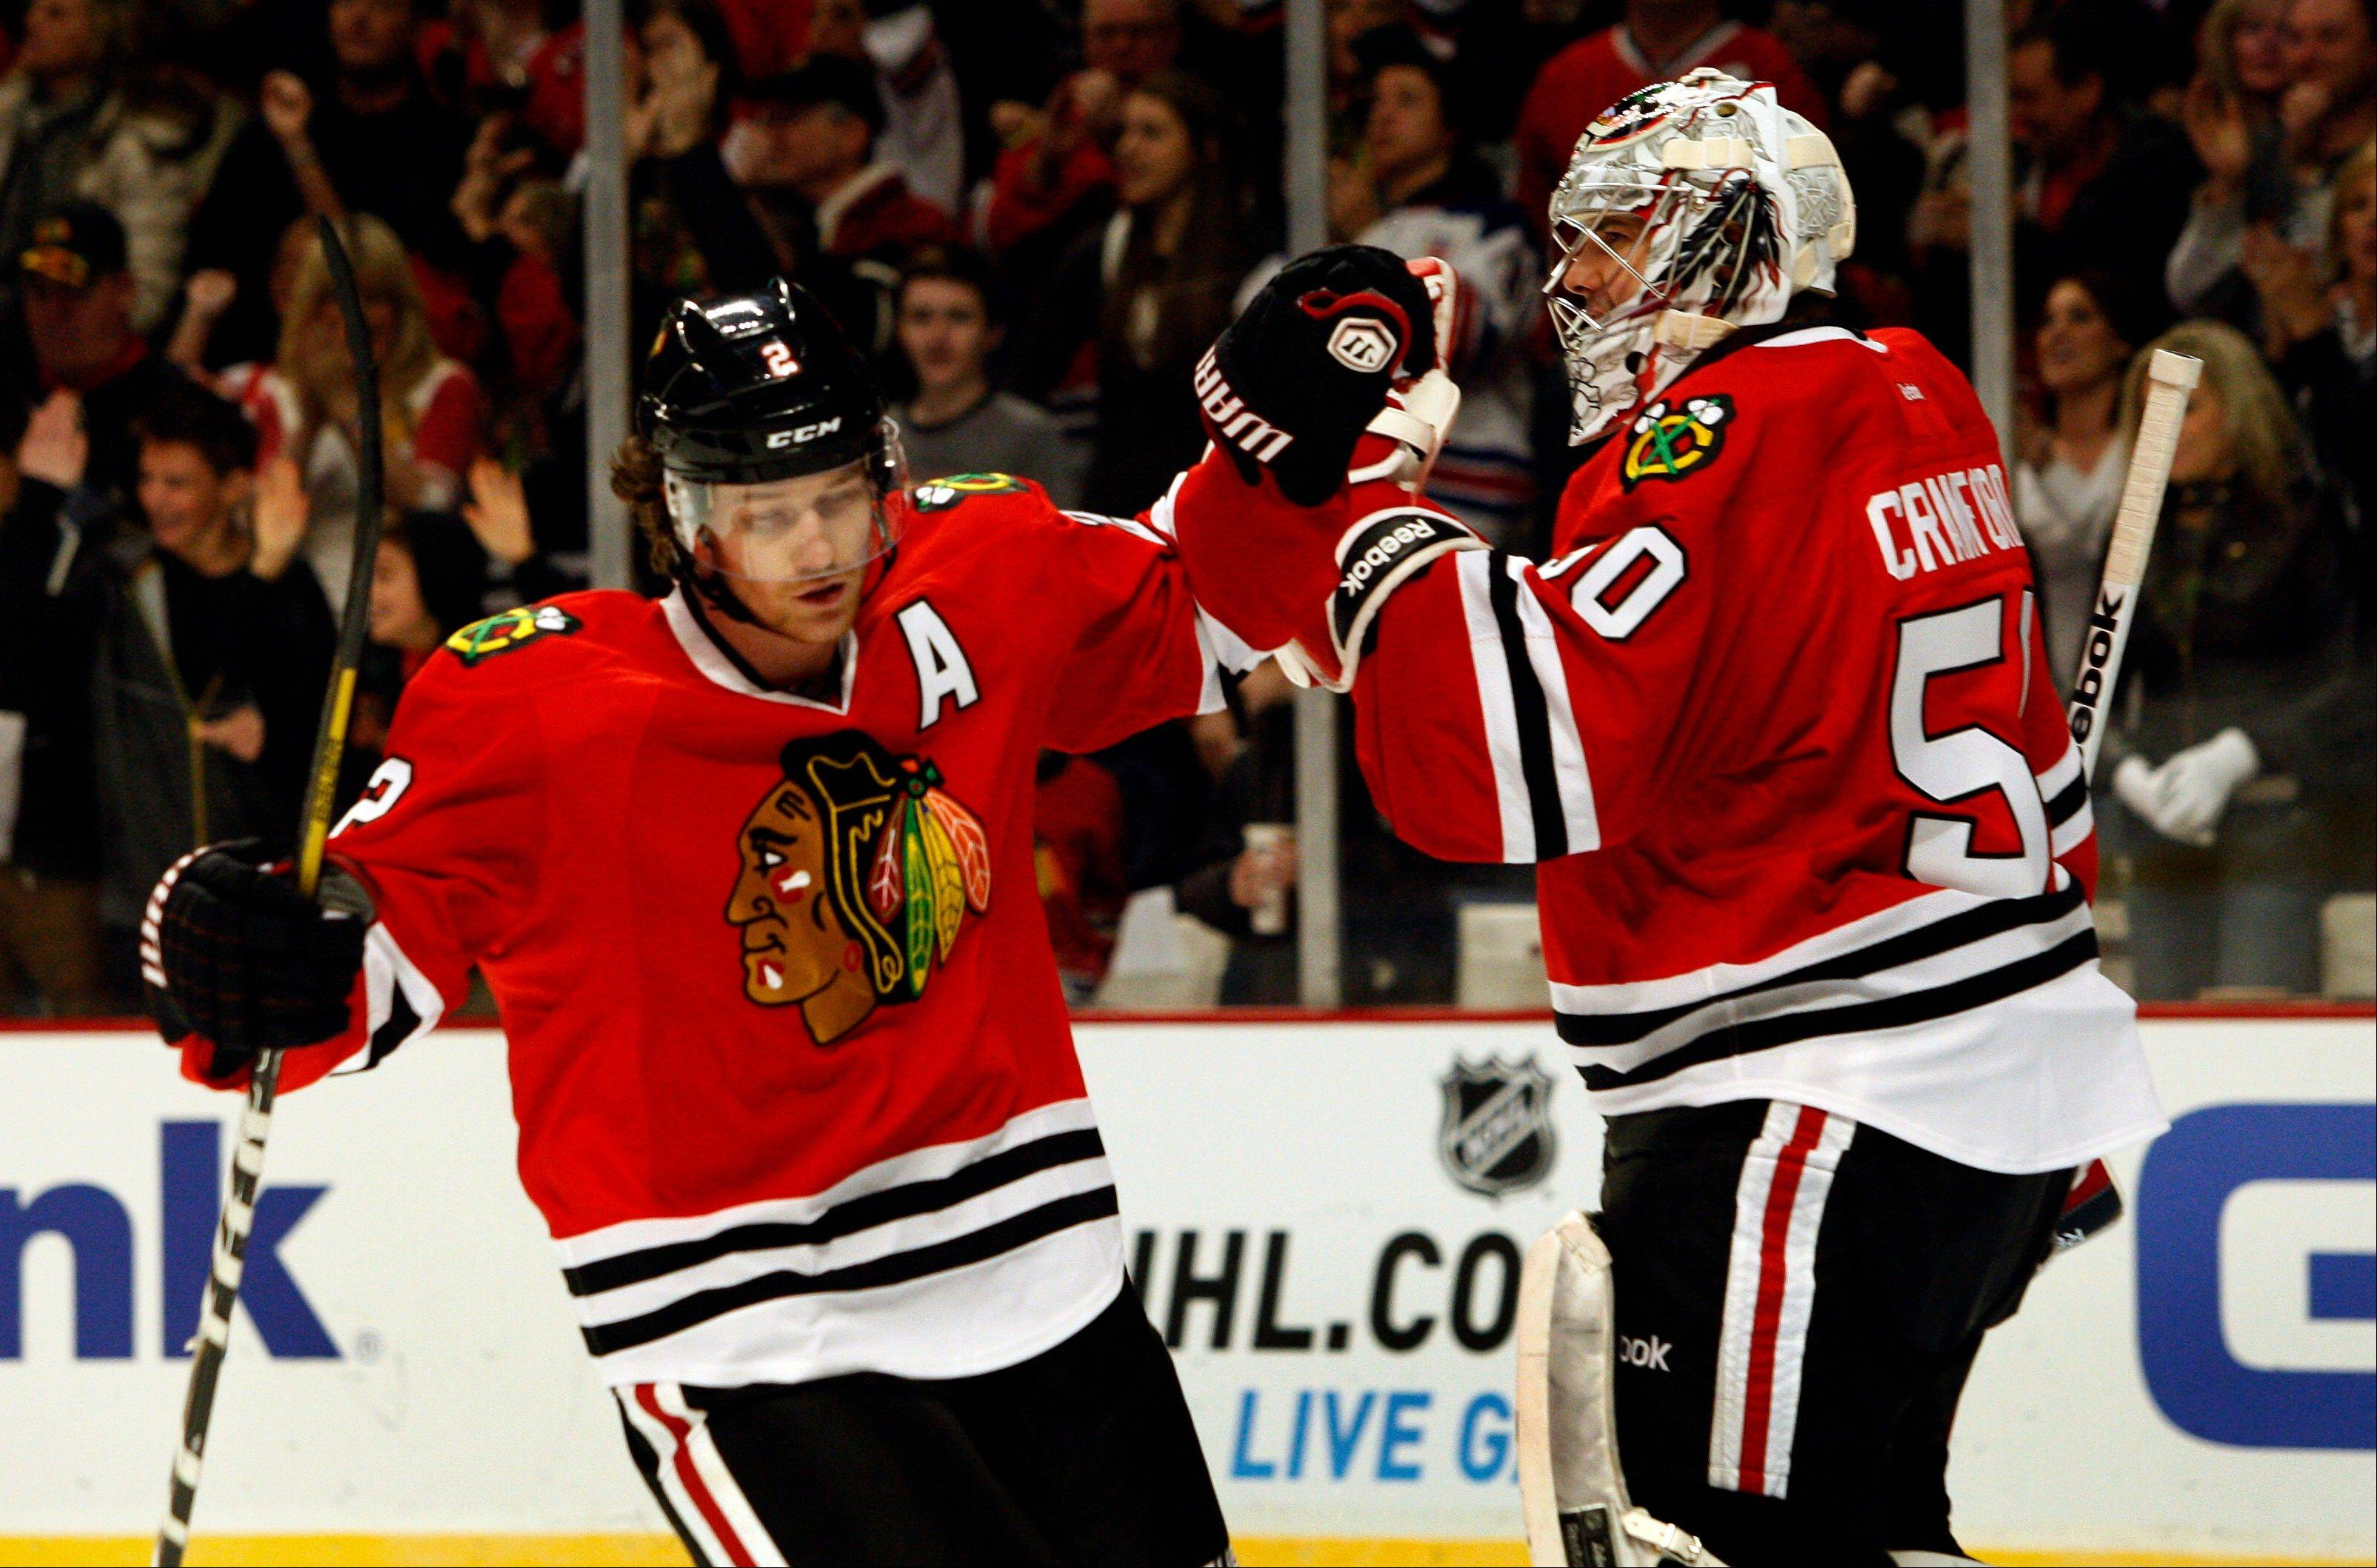 Blackhawks defenseman Duncan Keith, left, is congratulated by goalie Corey Crawford in Sunday�s first period after Keith scored against the Detroit Red Wings.